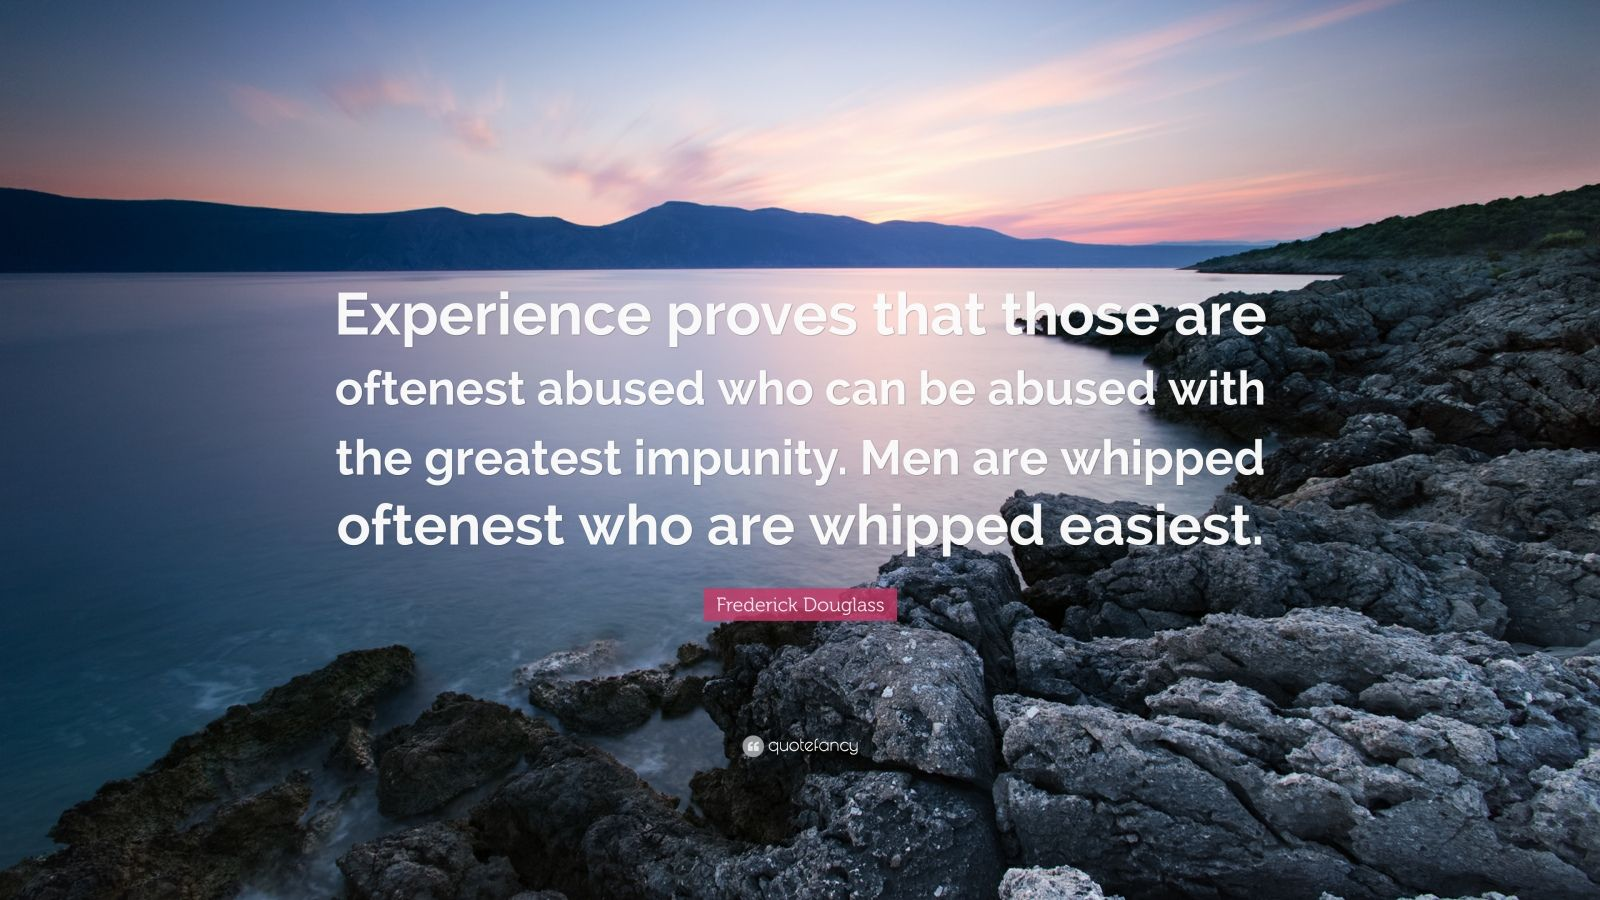 """Frederick Douglass Quote: """"Experience proves that those are oftenest abused who can be abused with the greatest impunity. Men are whipped oftenest who are whipped easiest."""""""